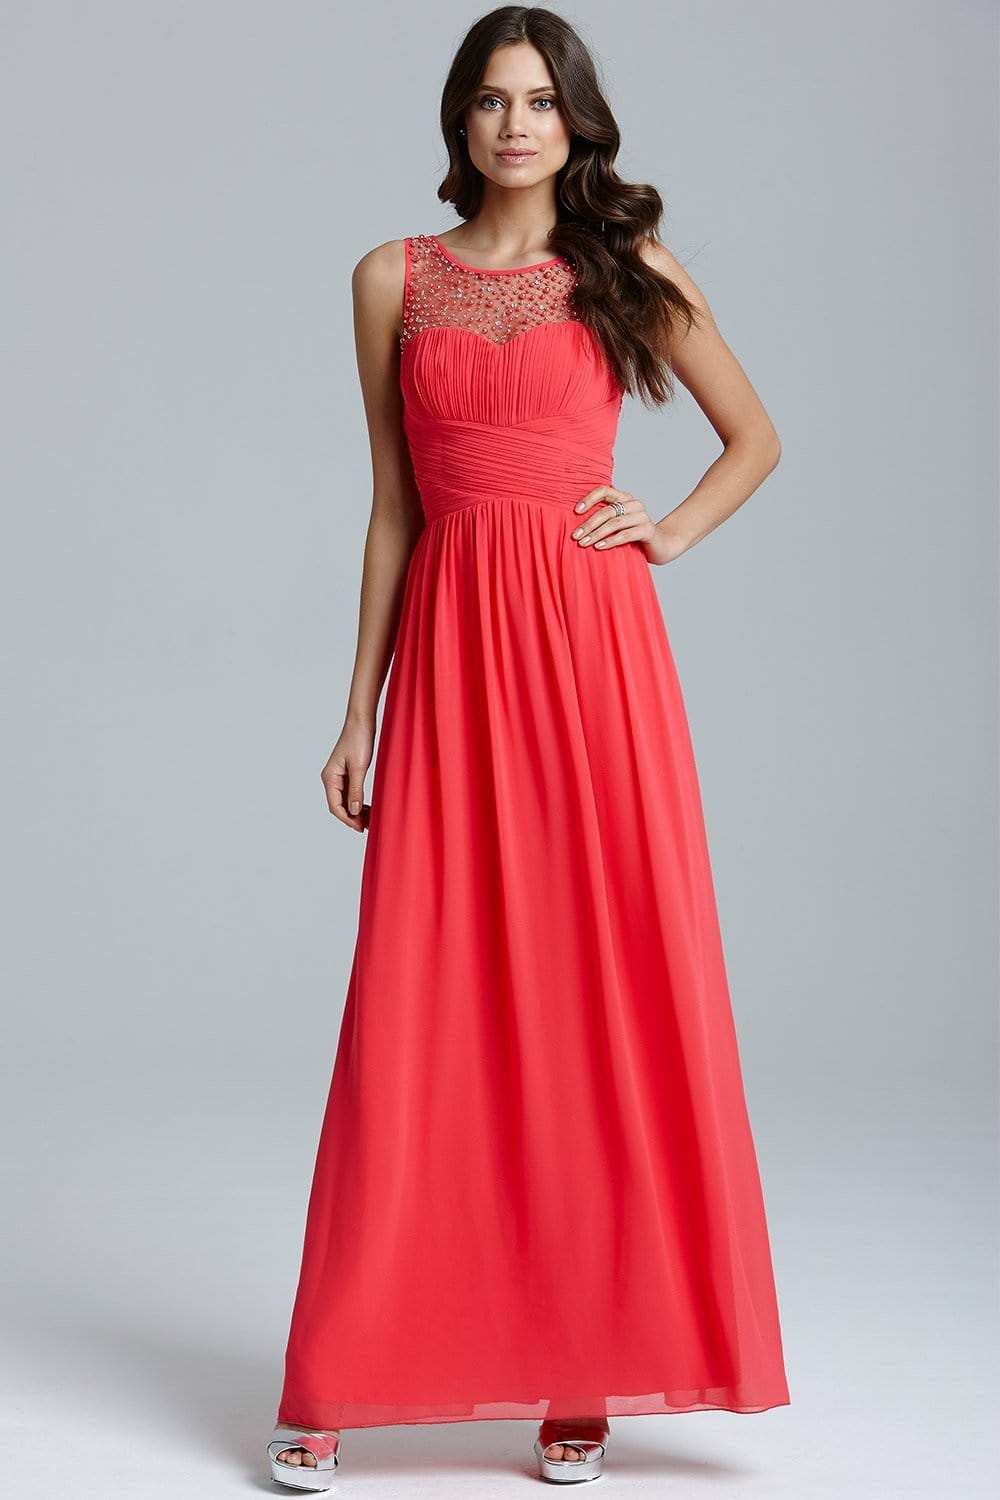 Images of Maxi Dress Coral - The Fashions Of Paradise